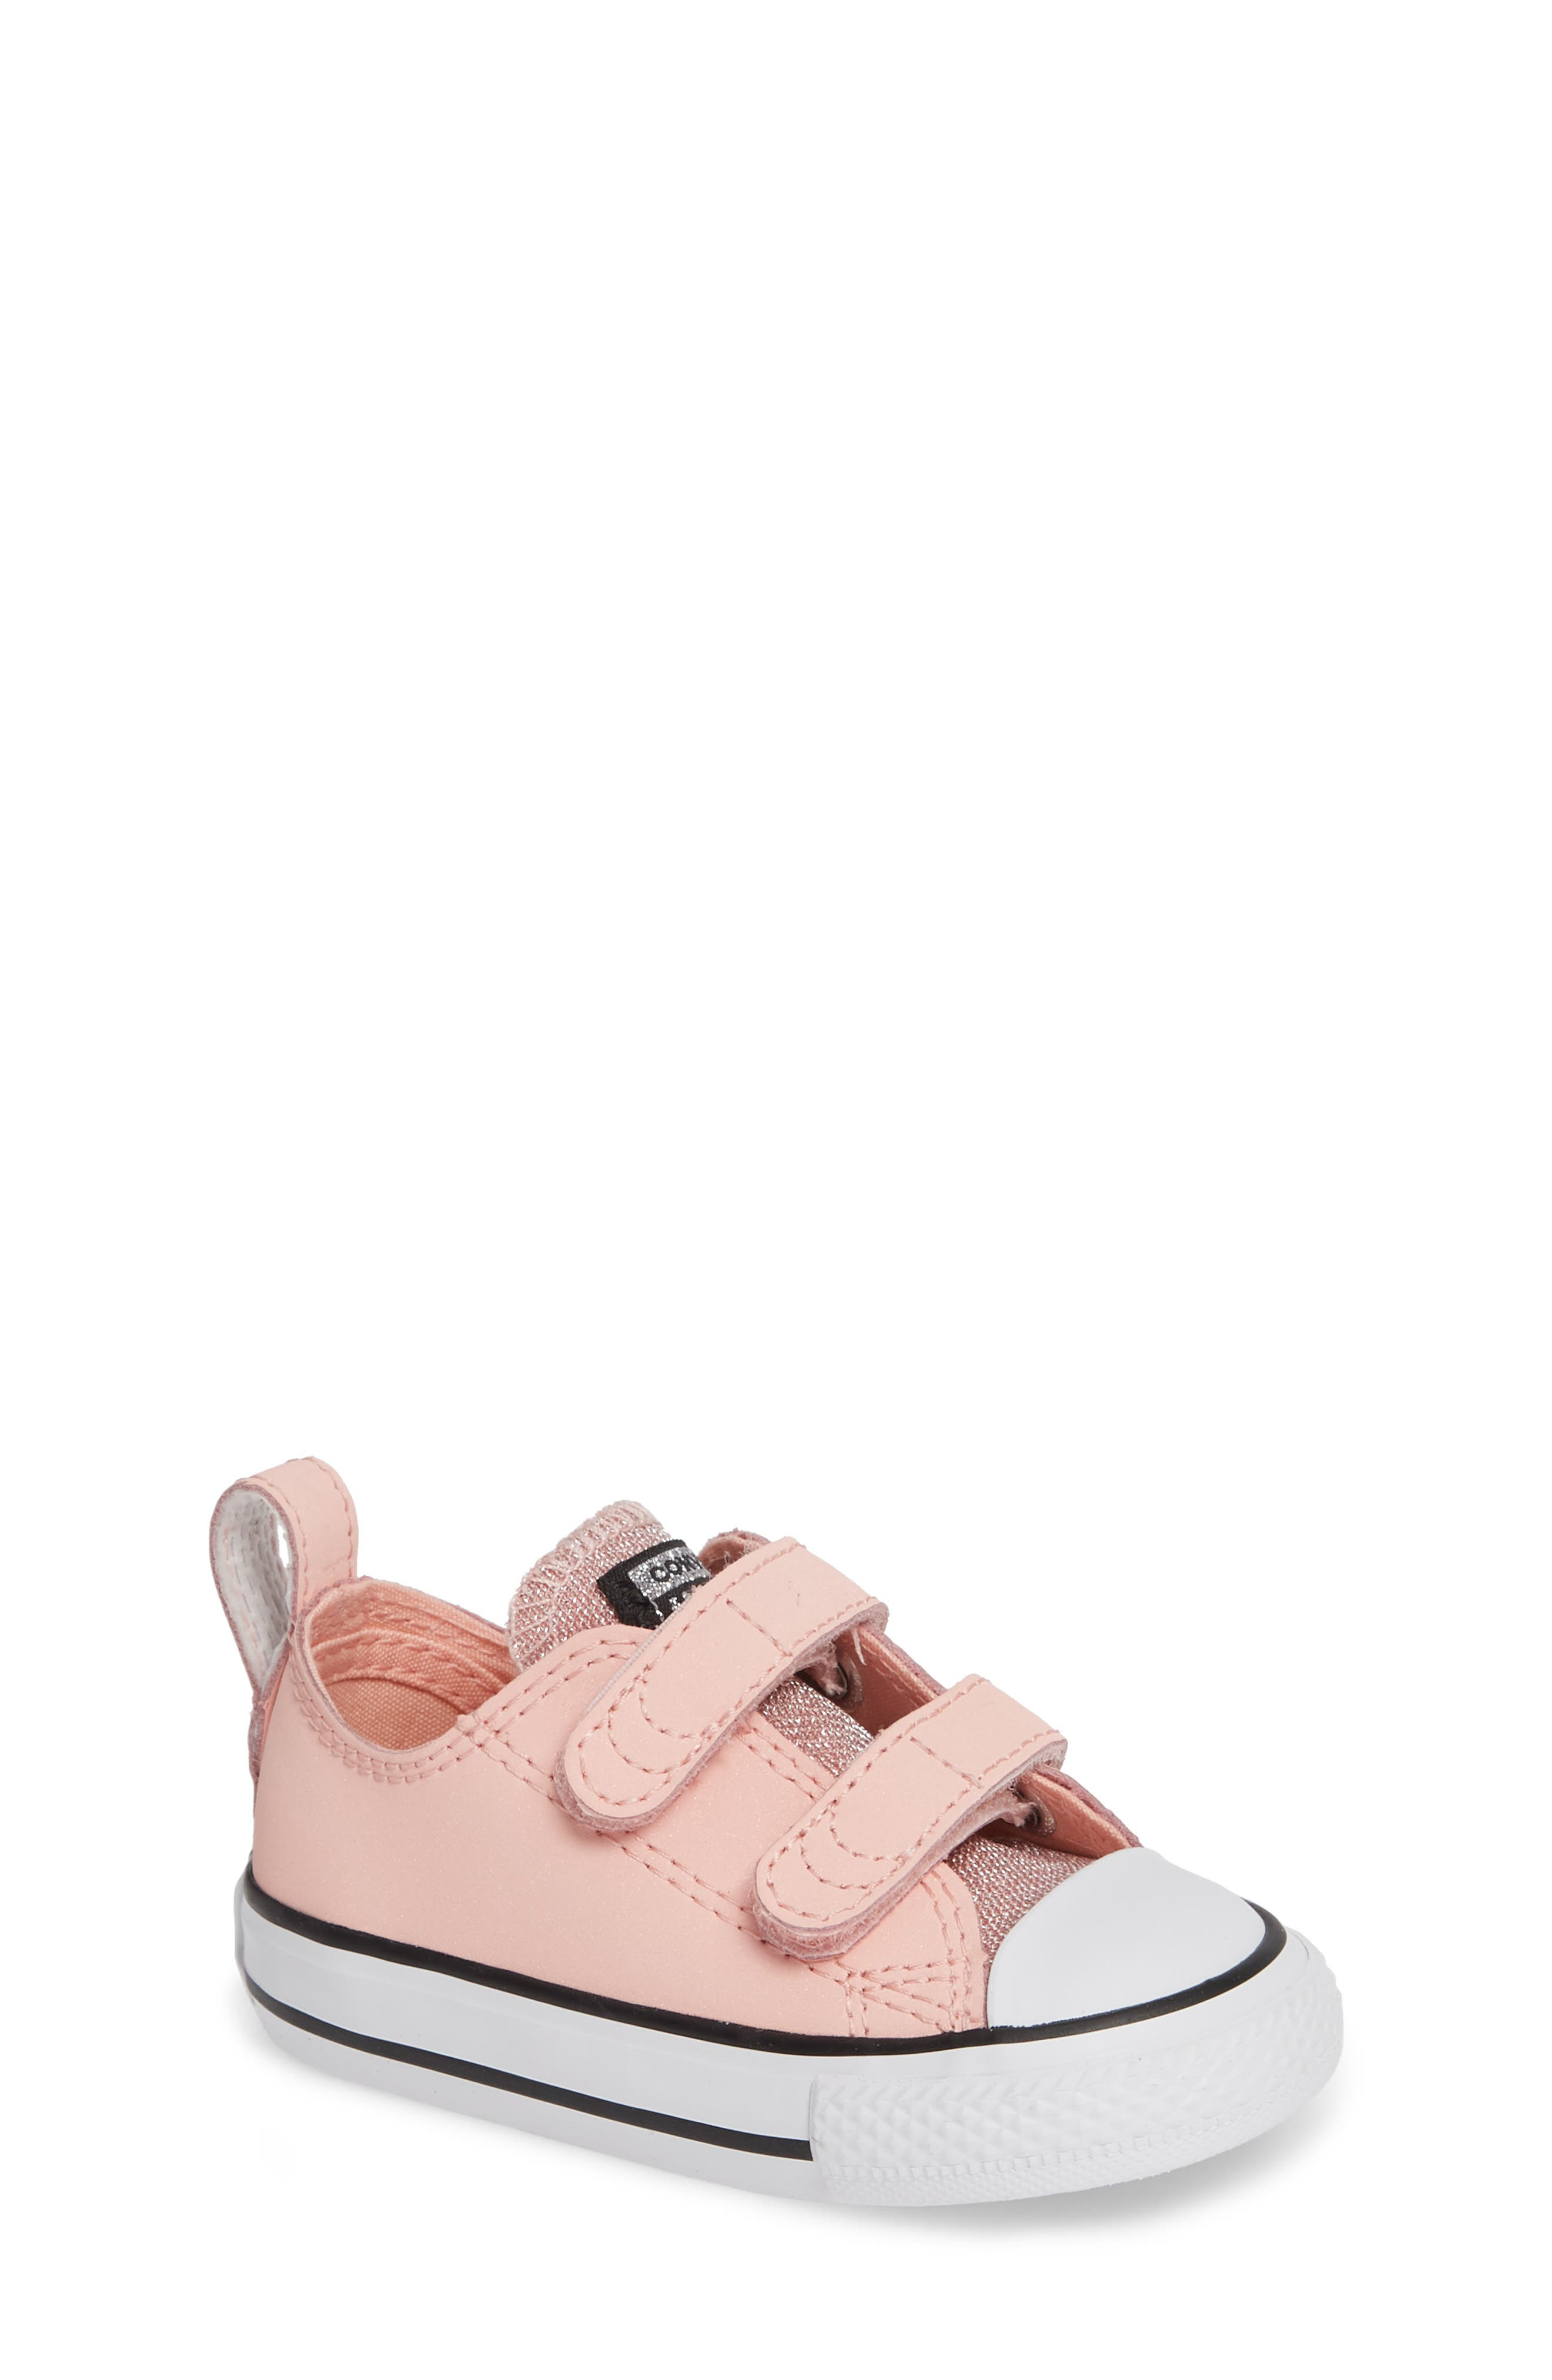 All Star<sup>®</sup> Seasonal Glitter Sneaker,                         Main,                         color, STORM PINK